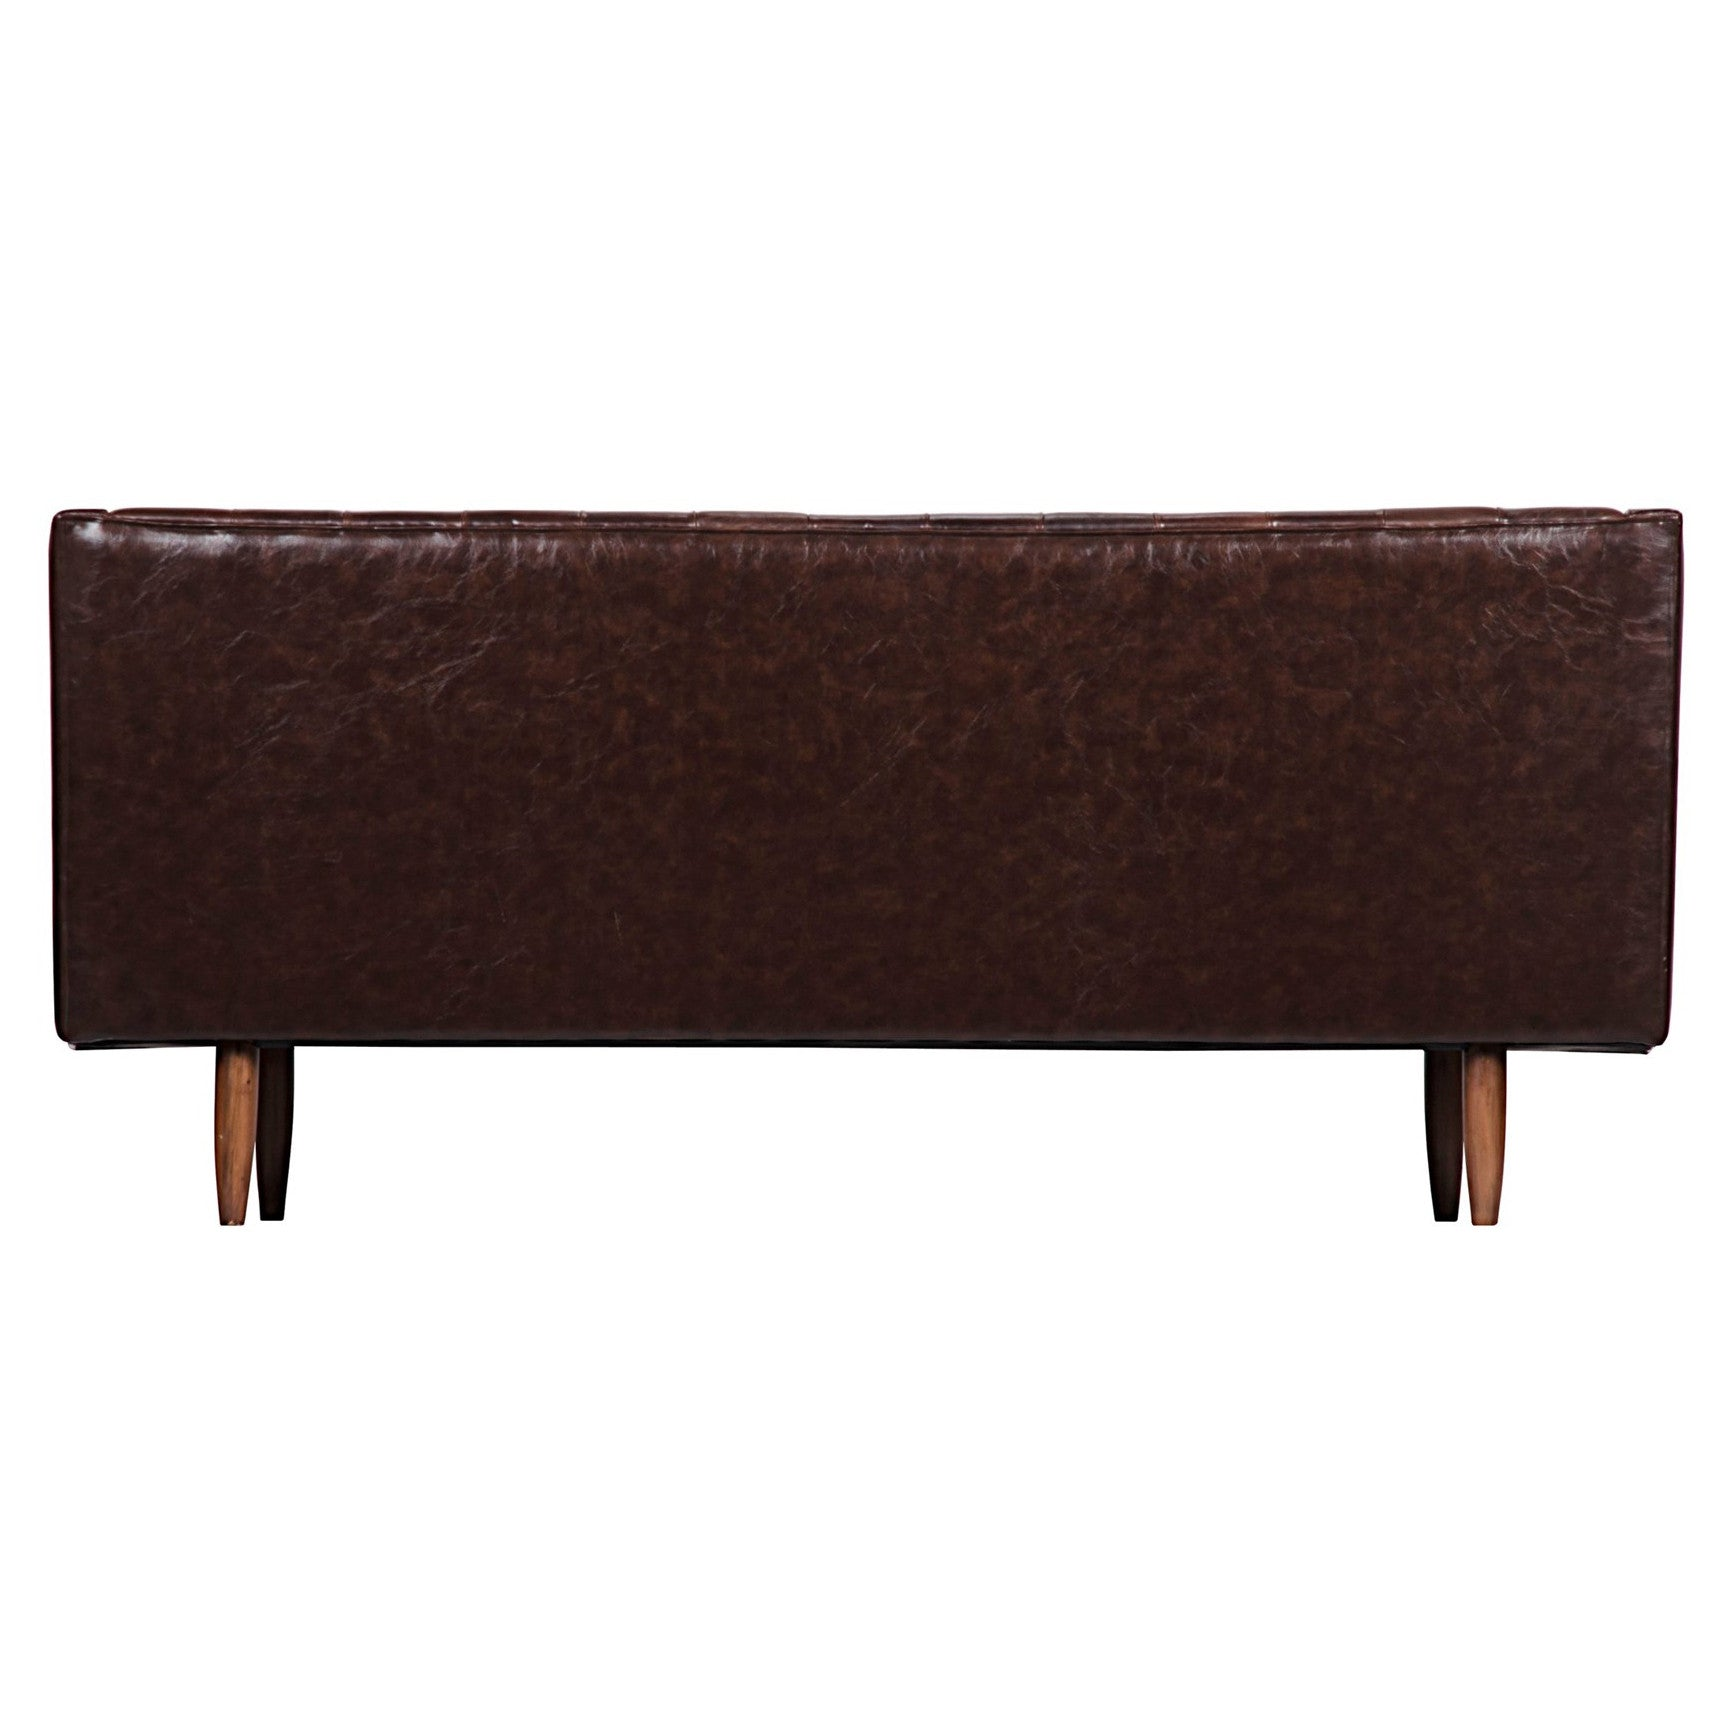 Noir - Reynolds Sofa, Tufted